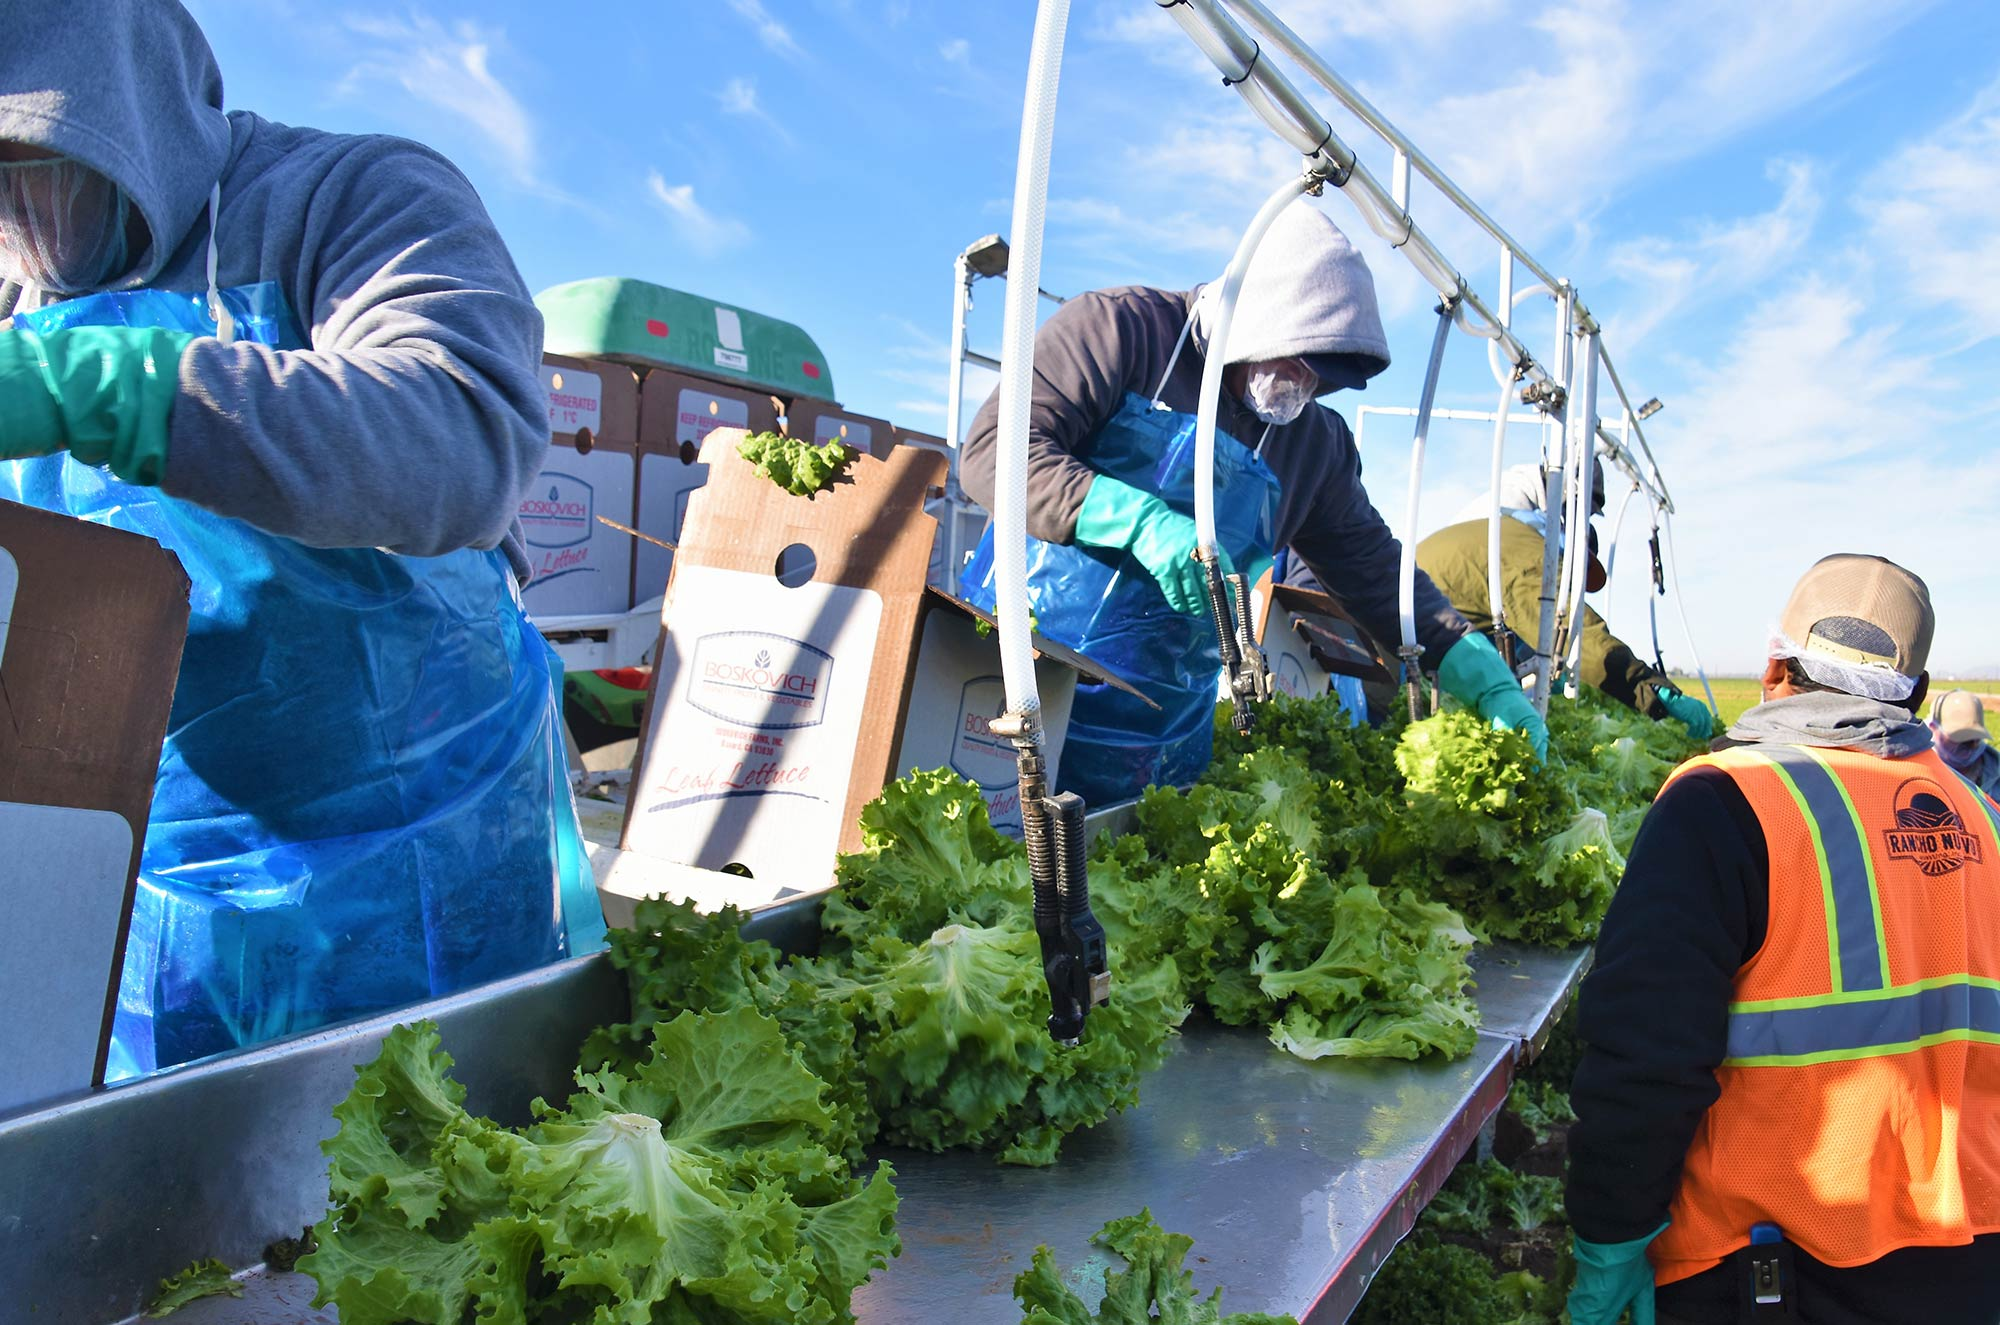 Field workers washing harvested lettuce